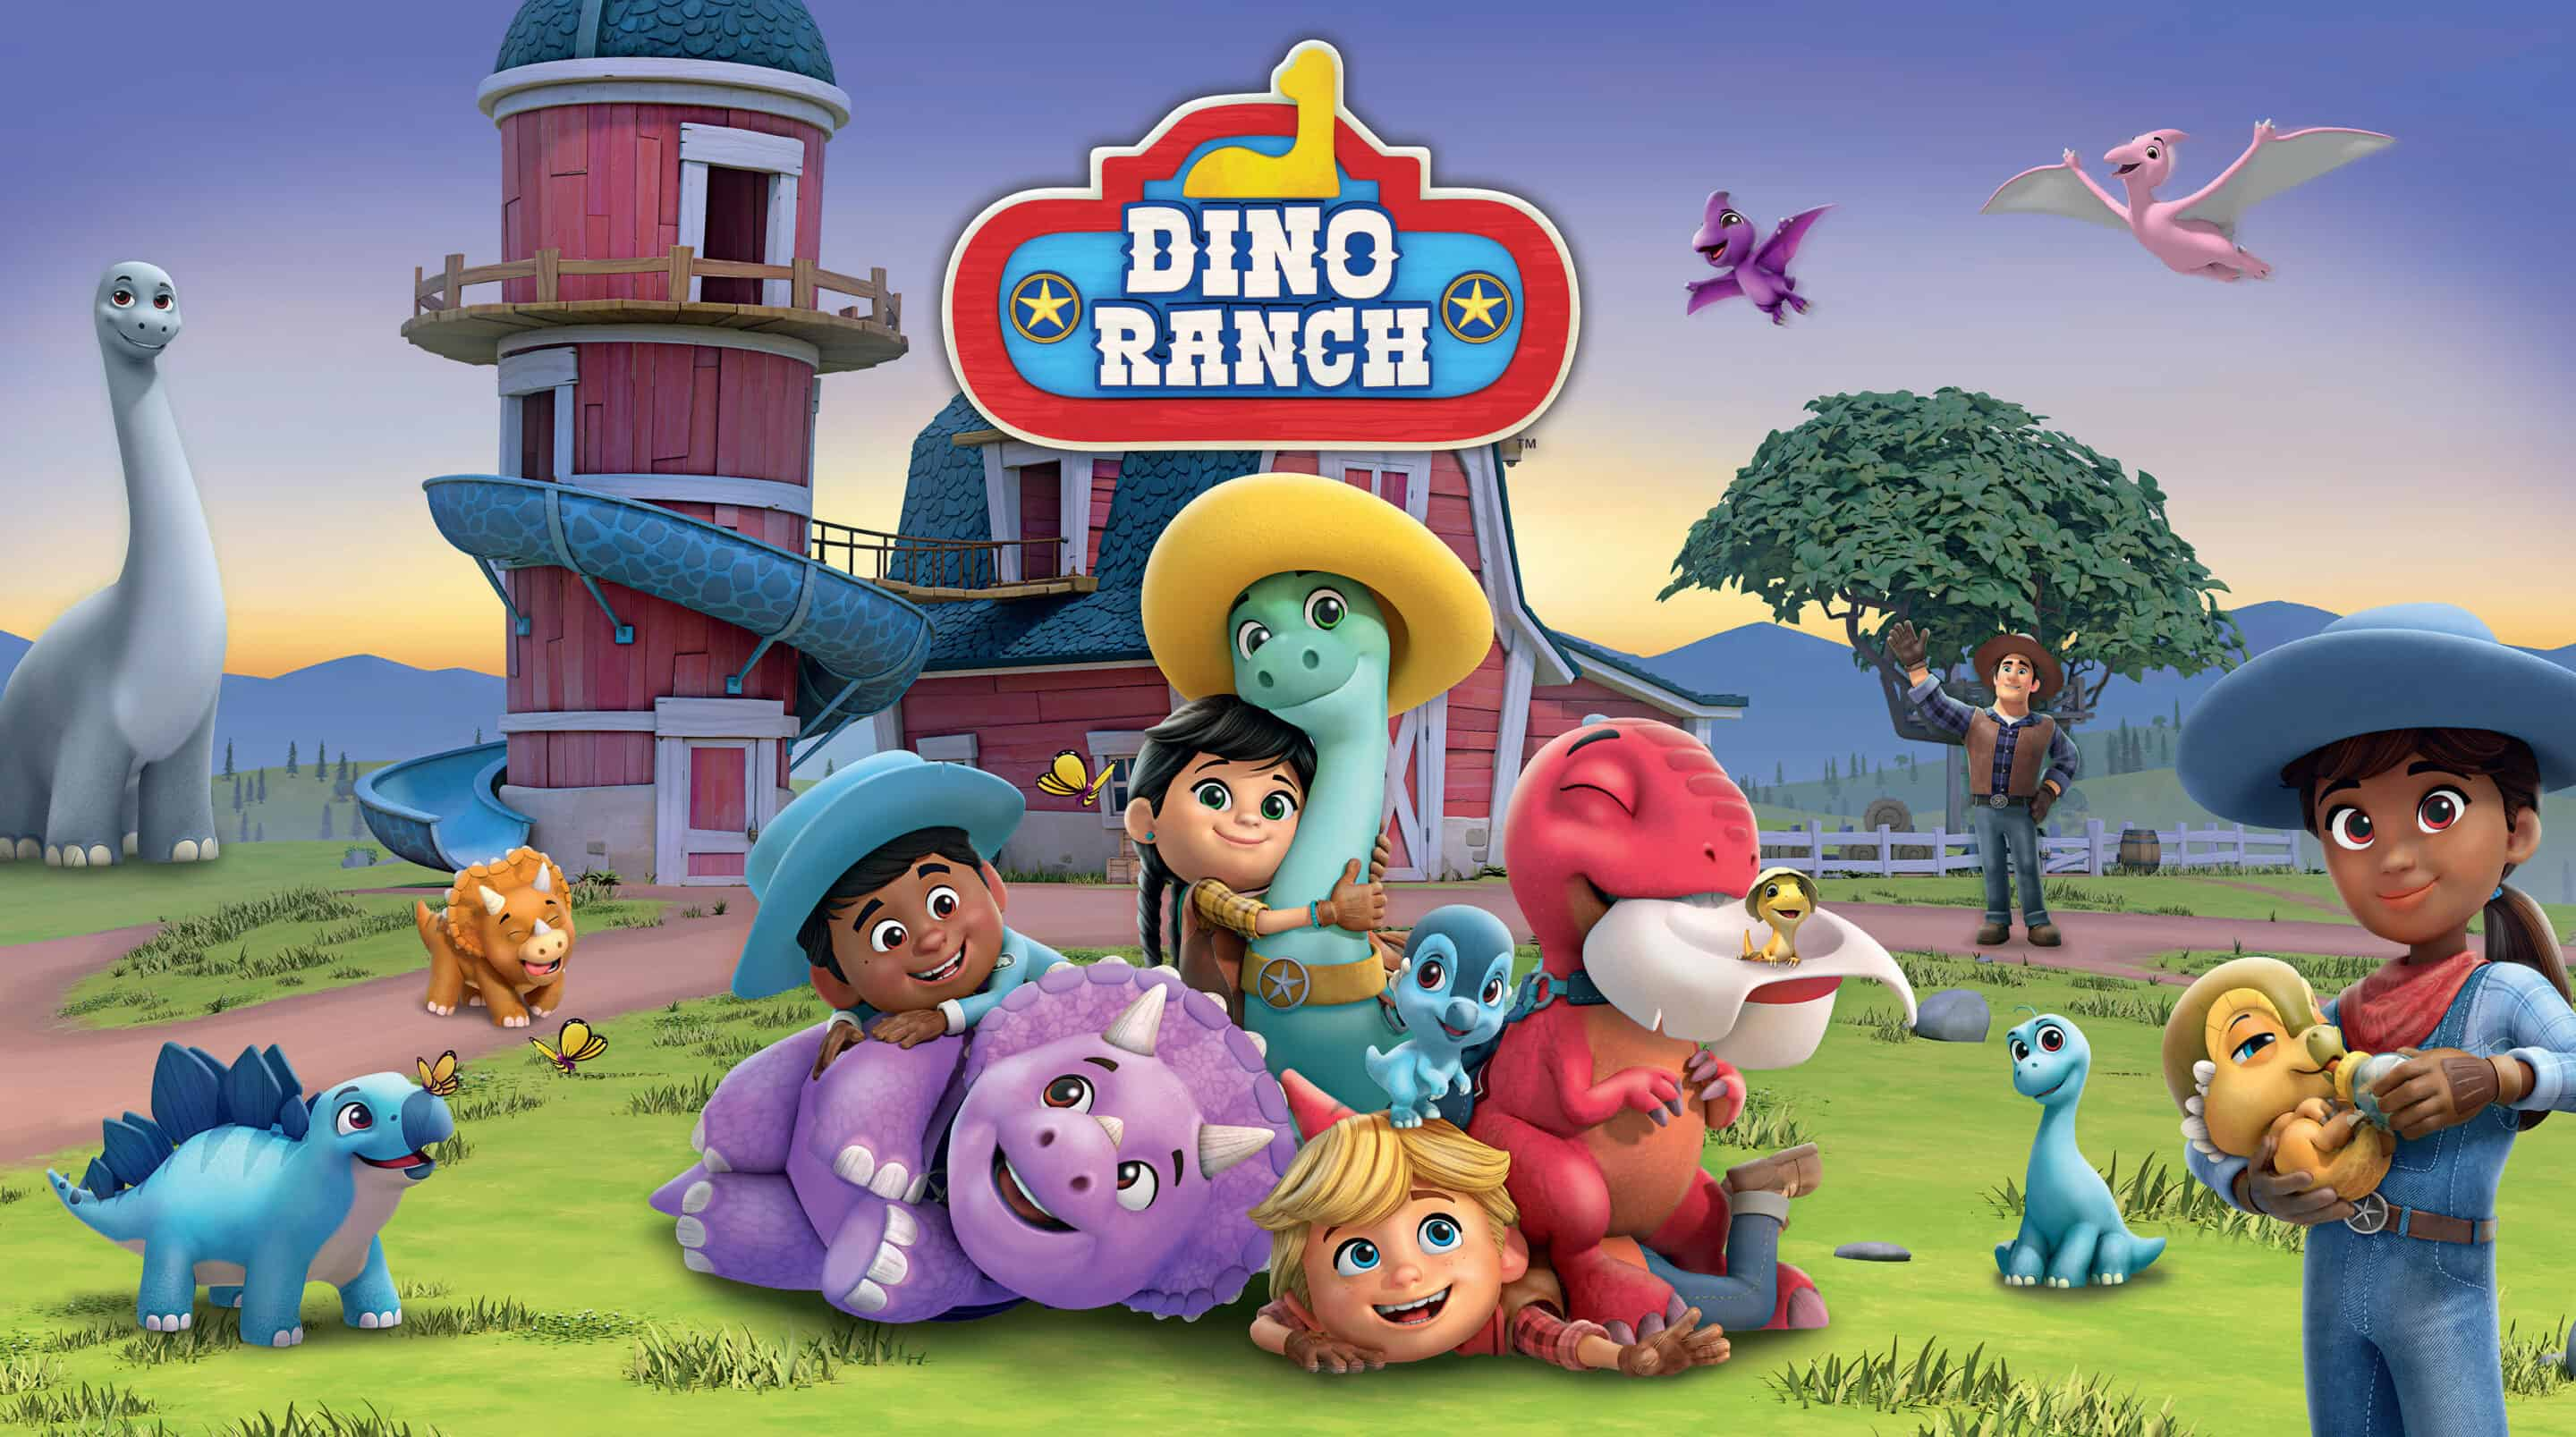 """New Episodes of """"Dino Ranch"""" Arriving on 11/3 on Disney+"""